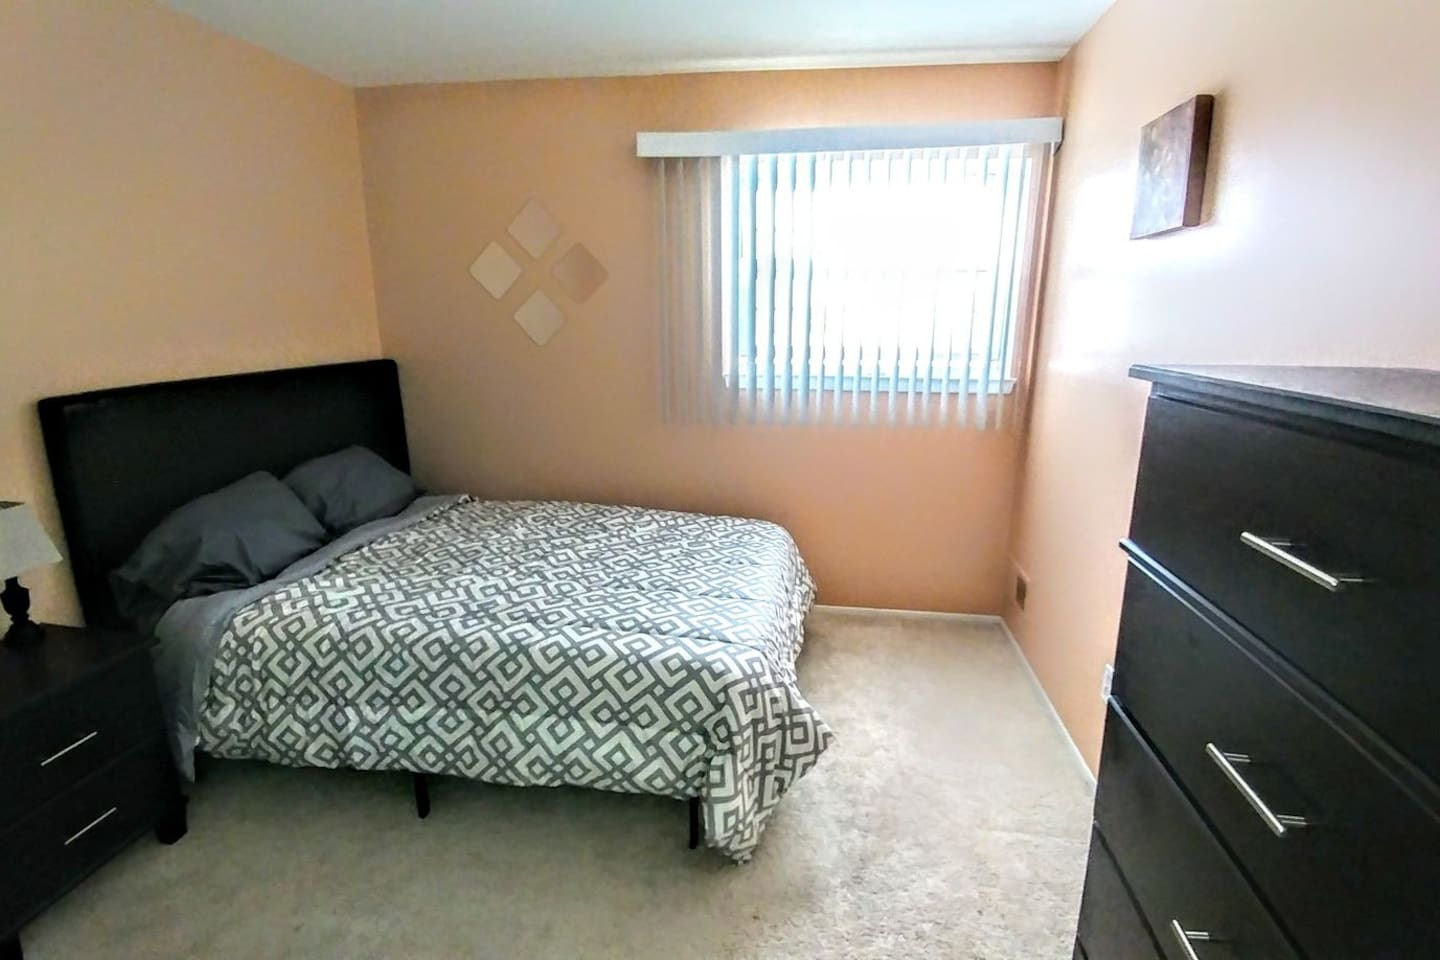 Guest bedroom w/ full size bed